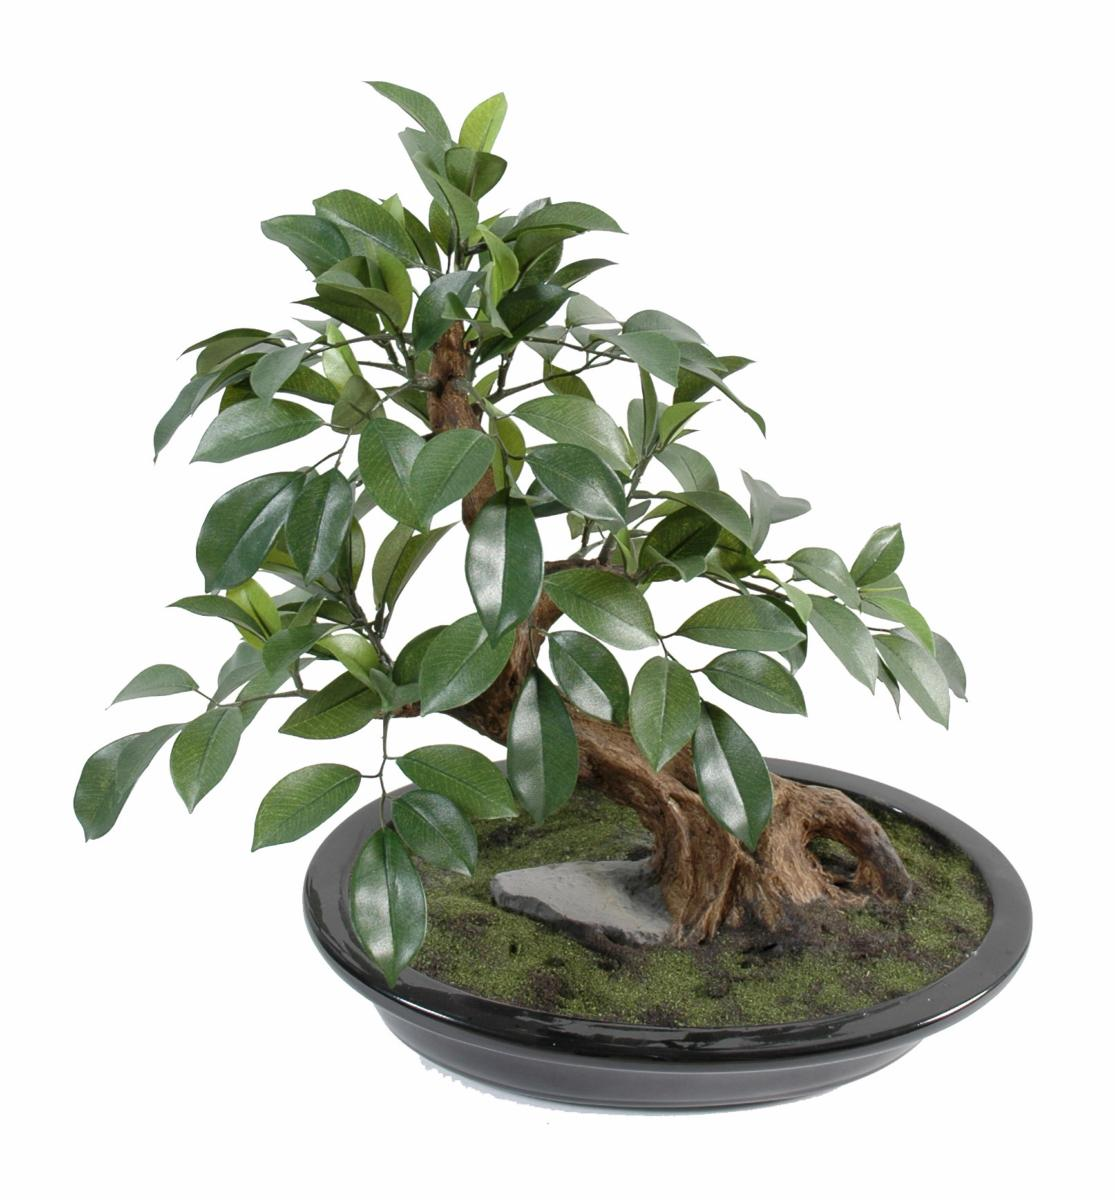 arbre artificiel miniature bonsai ficus en coupe plante synth tique d 39 int rieur 41 cm vert. Black Bedroom Furniture Sets. Home Design Ideas